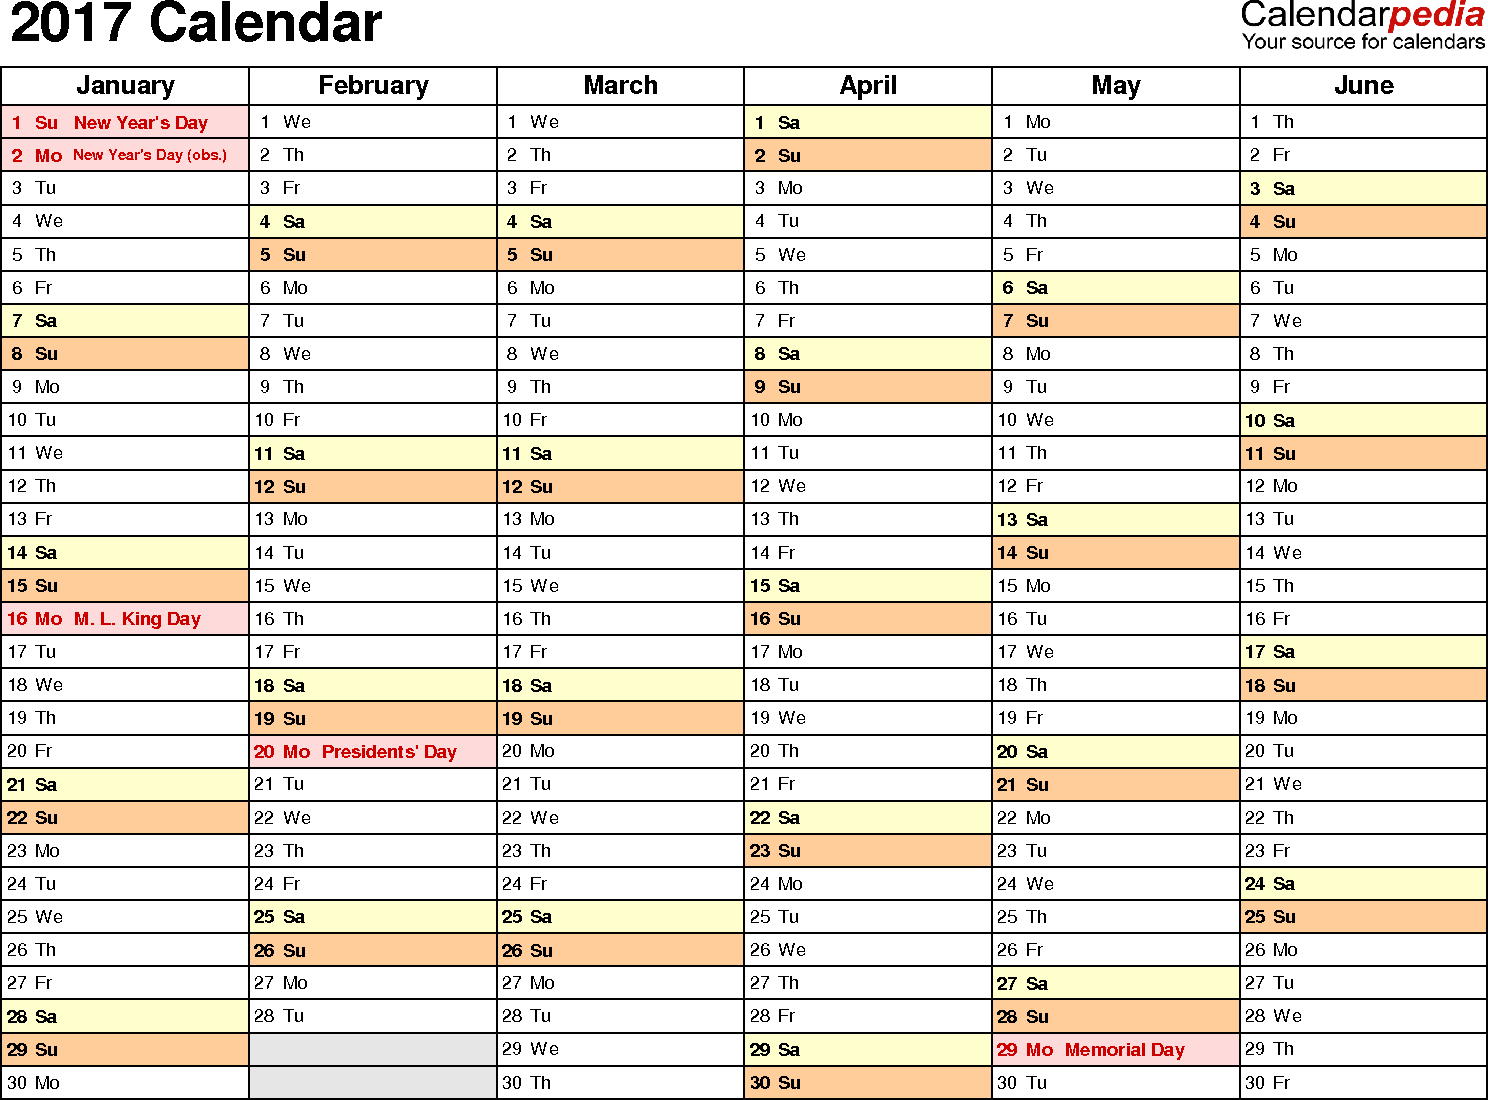 Ediblewildsus  Unusual  Calendar  Download  Free Printable Excel Templates Xls With Luxury Template   Calendar For Excel Months Horizontally  Pages Landscape Orientation With Amazing Macros Excel  Also How To Display Cell Formulas In Excel  In Addition Calculate Quartiles In Excel And How To Make A Pie Chart In Excel  As Well As Excel Vba Column Width Additionally Excel Add Leading Zero From Calendarpediacom With Ediblewildsus  Luxury  Calendar  Download  Free Printable Excel Templates Xls With Amazing Template   Calendar For Excel Months Horizontally  Pages Landscape Orientation And Unusual Macros Excel  Also How To Display Cell Formulas In Excel  In Addition Calculate Quartiles In Excel From Calendarpediacom